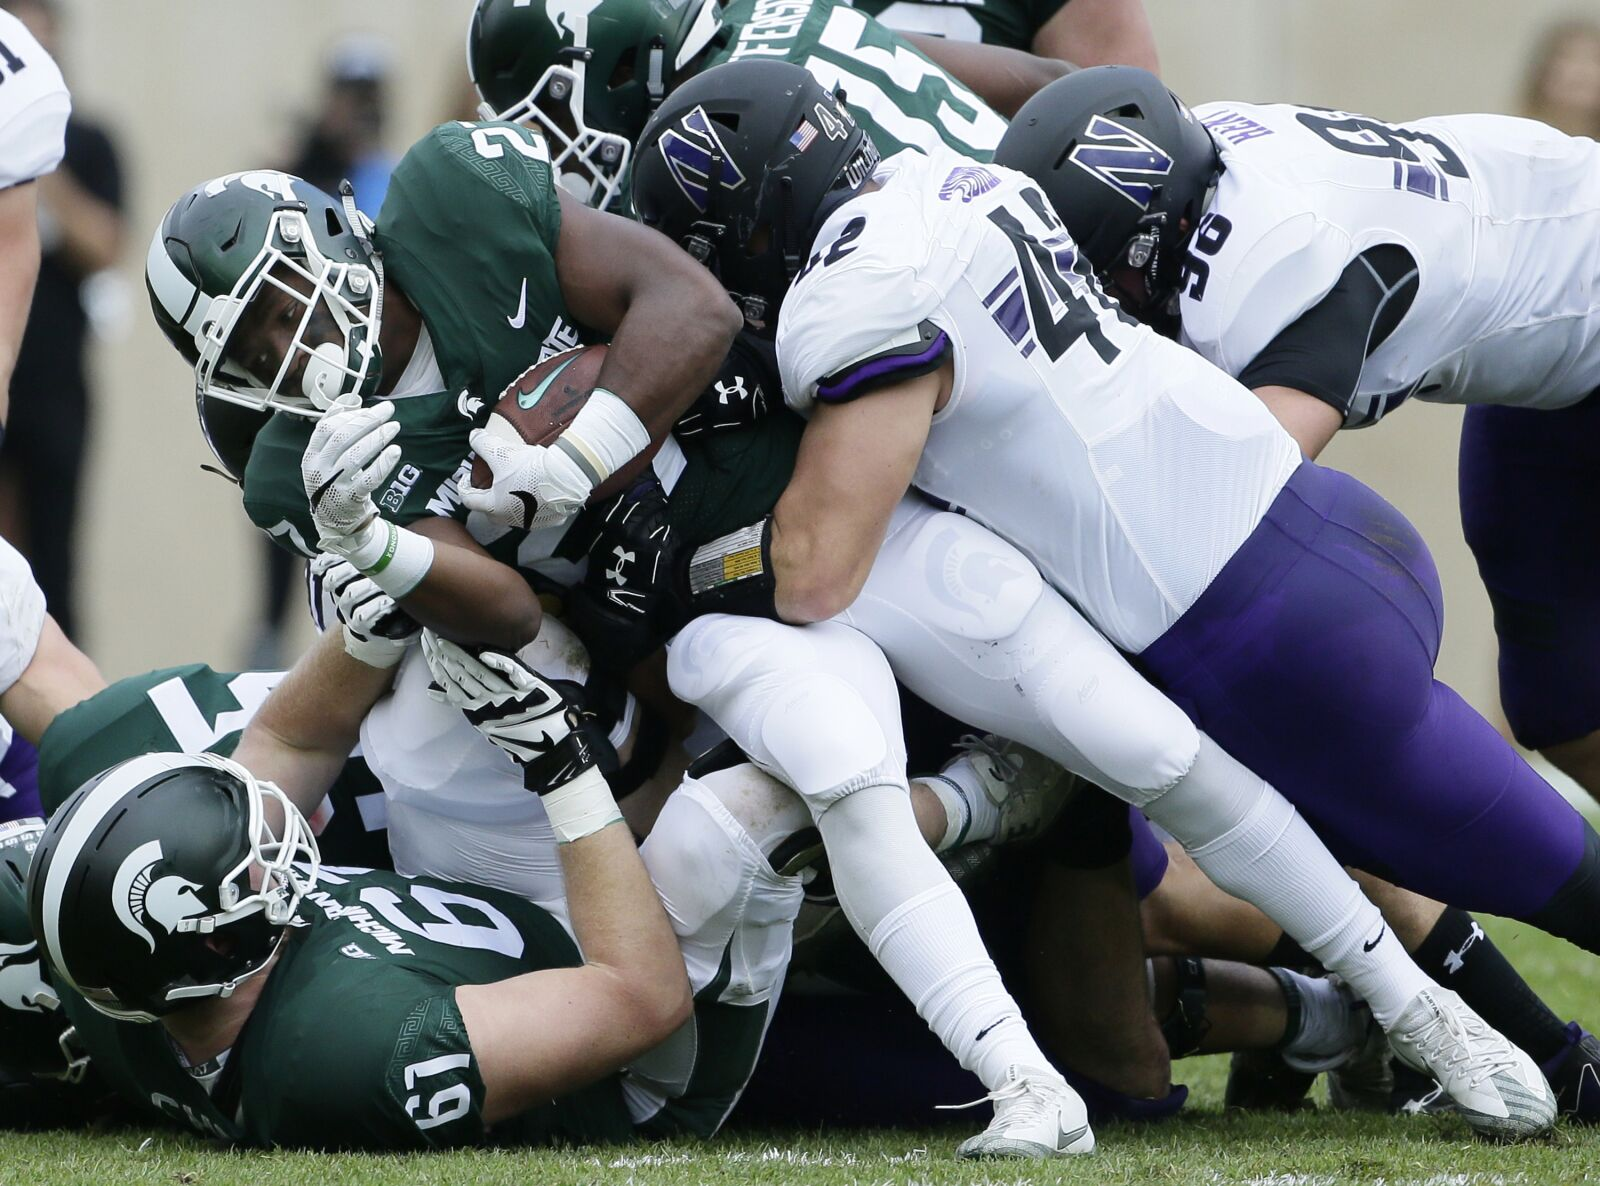 Michigan State Football: Weston Bridges' move to WR makes sense